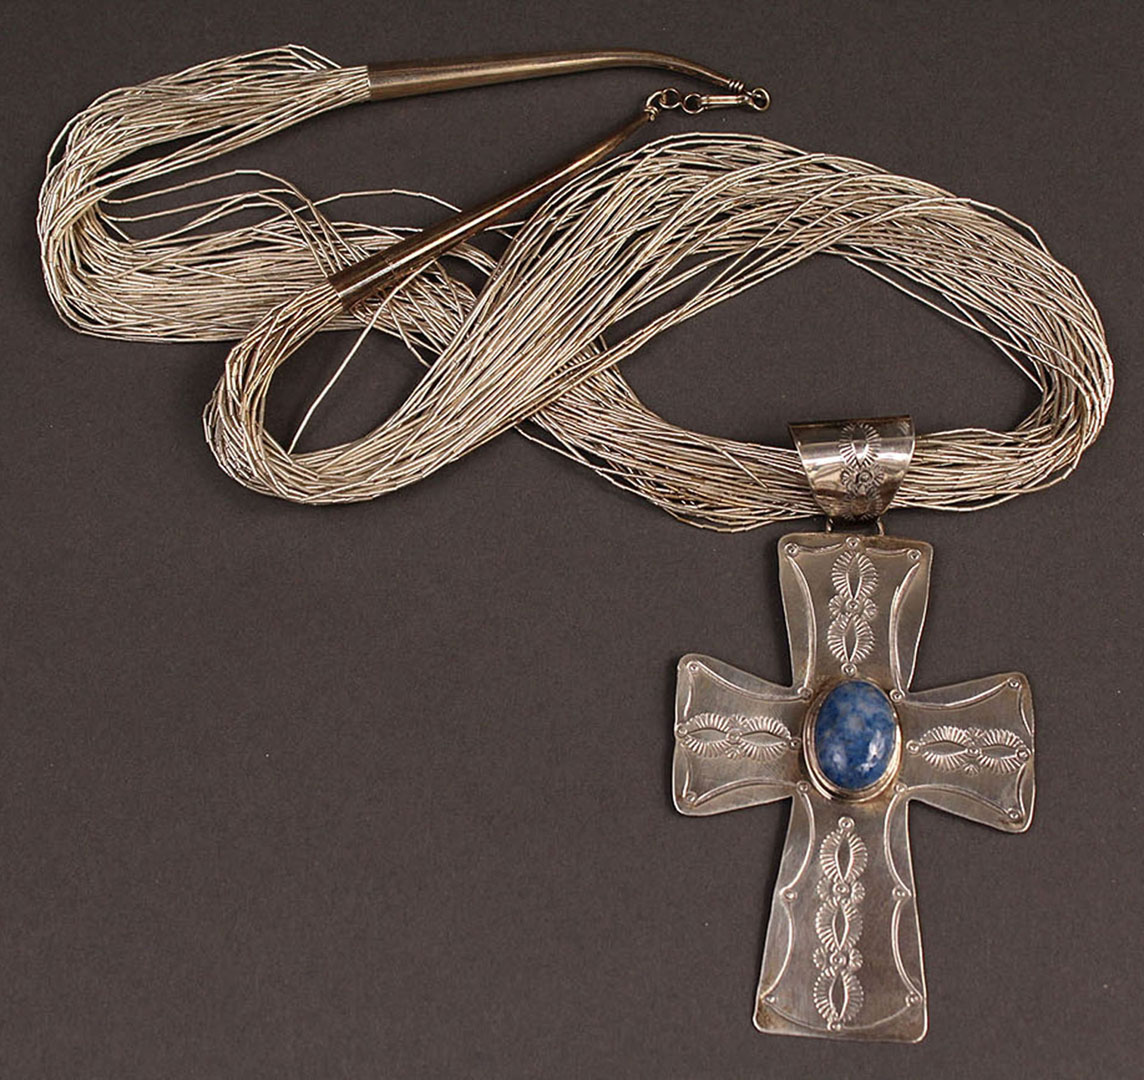 Lot 2872316: Sterling and turquoise necklace, Native American